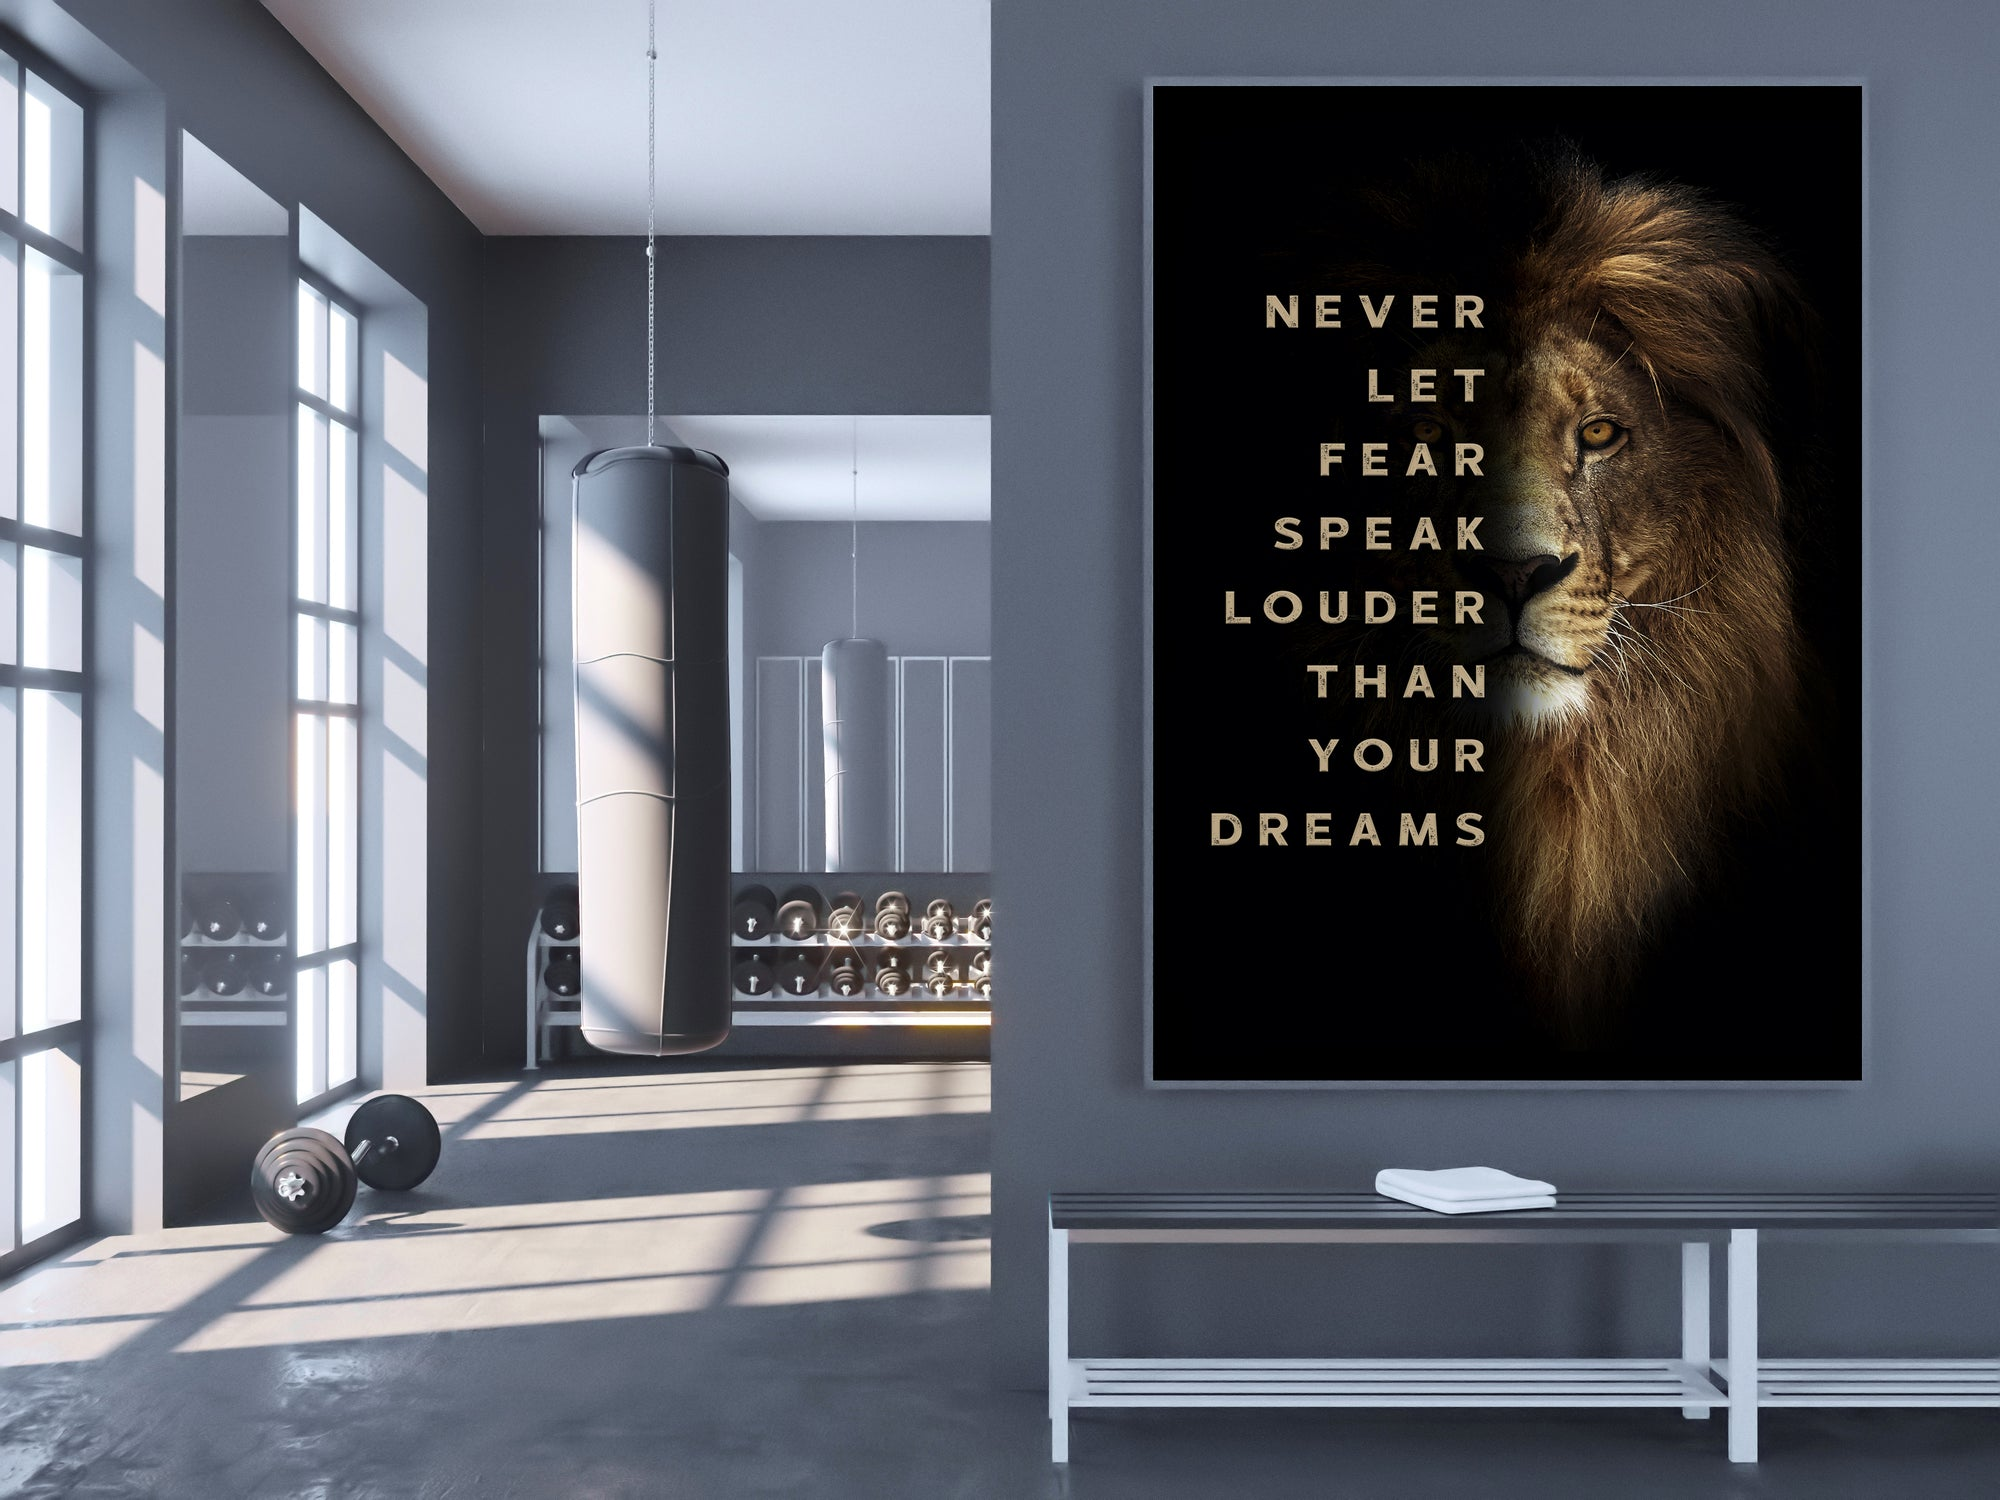 Chris Fabregas Motivational Prints